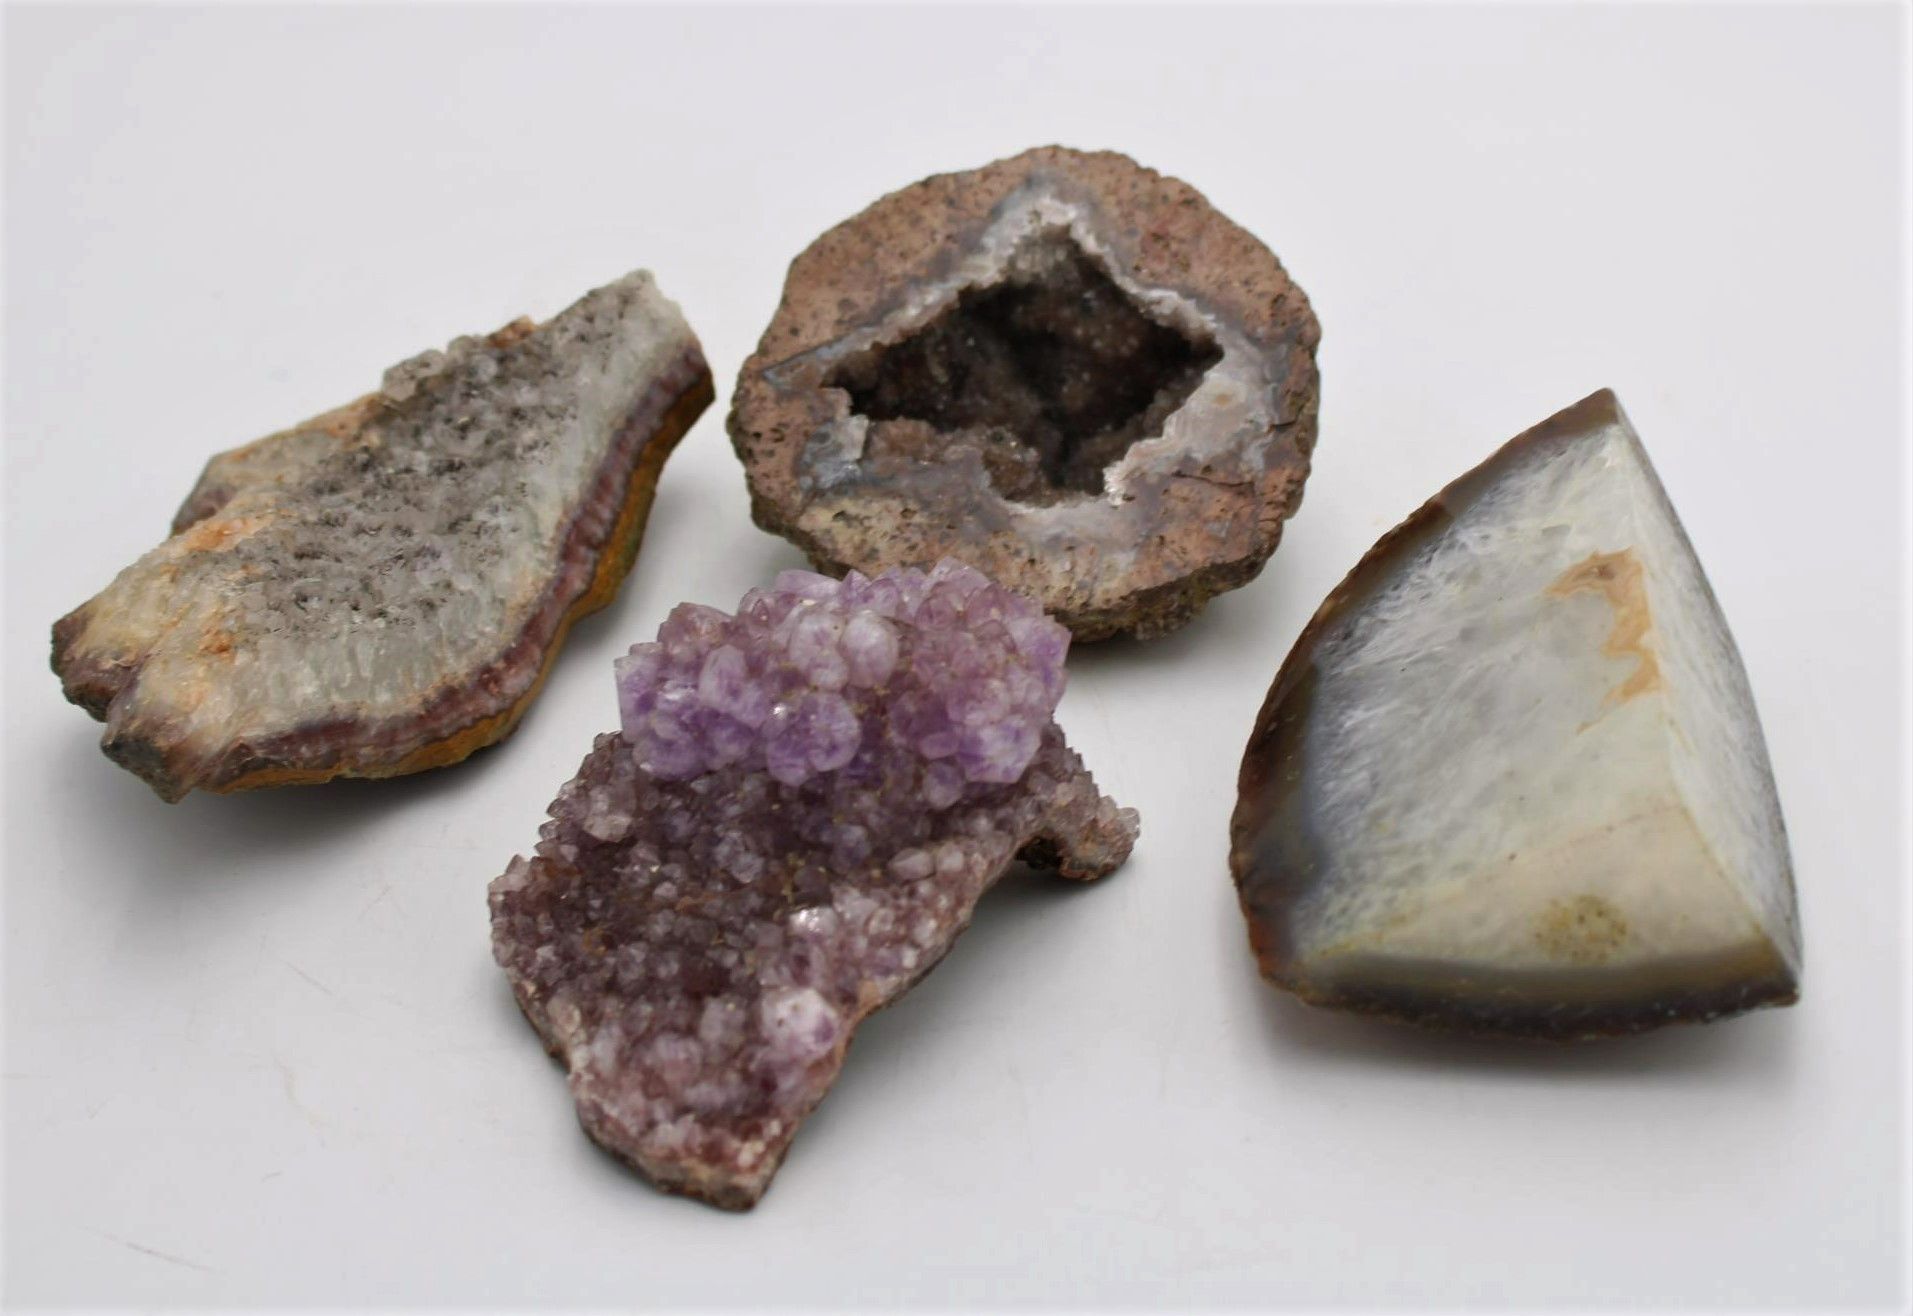 THREE PIECES OF ROCK CRYSTAL INCLUDING AMETHYST CRYSTAL FRAGMENT, AND A WORKED CRYSTAL ORNAMENT